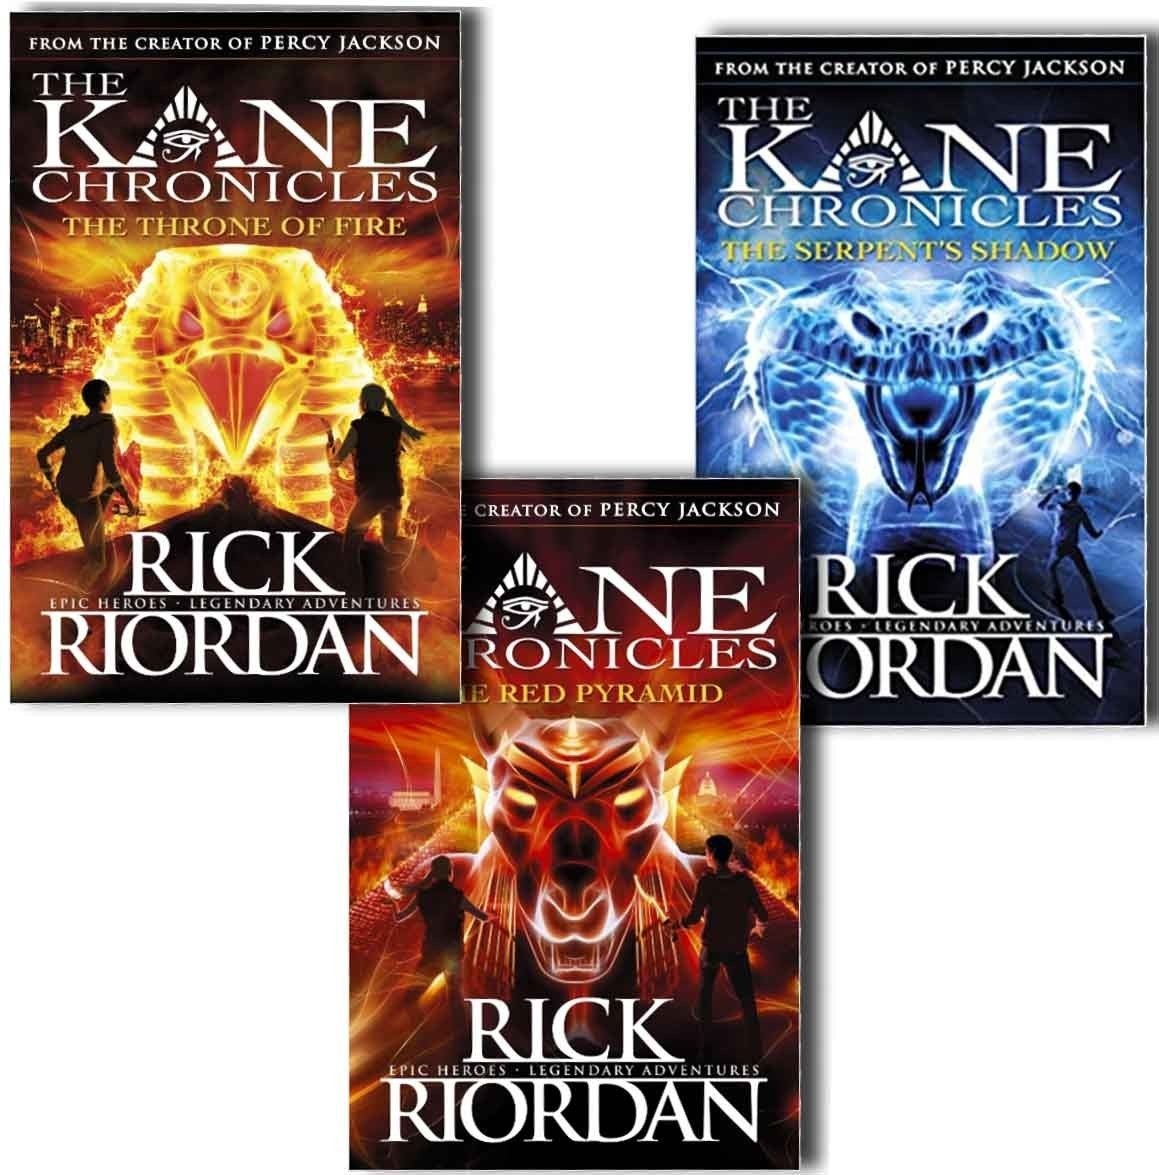 Review: The Kane Chronicles